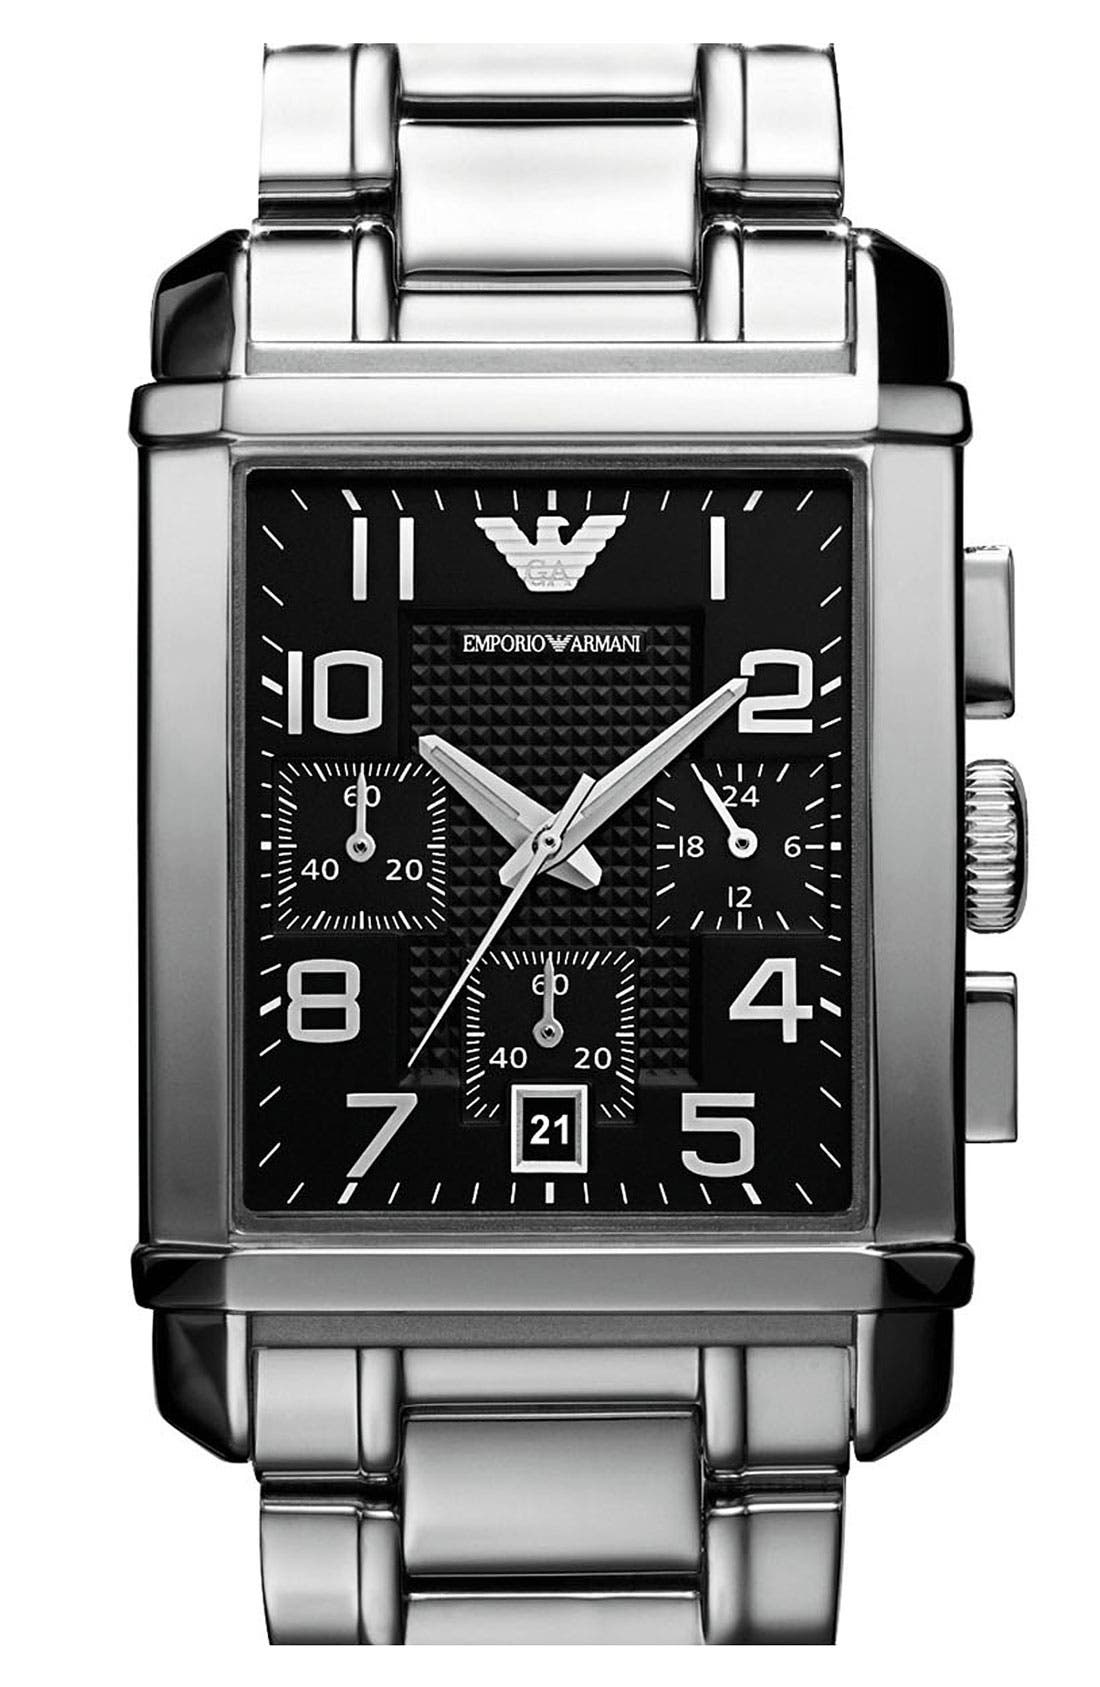 Main Image - Emporio Armani Rectangular Bracelet Watch, 33mm x 40mm